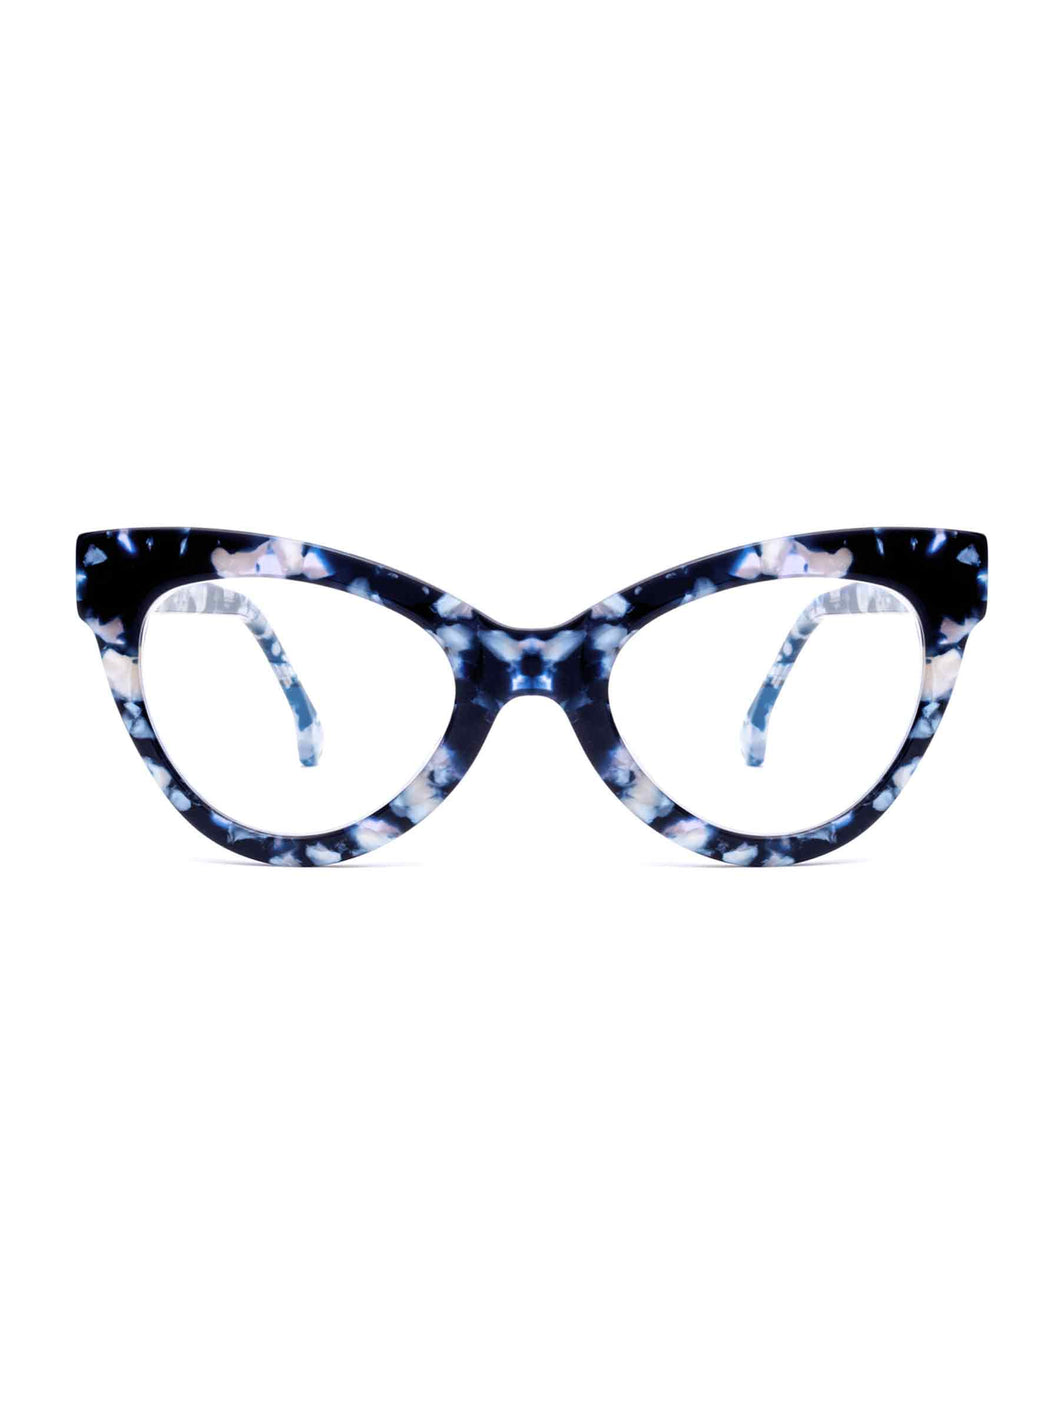 Supernormal People Magnetic Blue Marble Computer Glasses - LDC